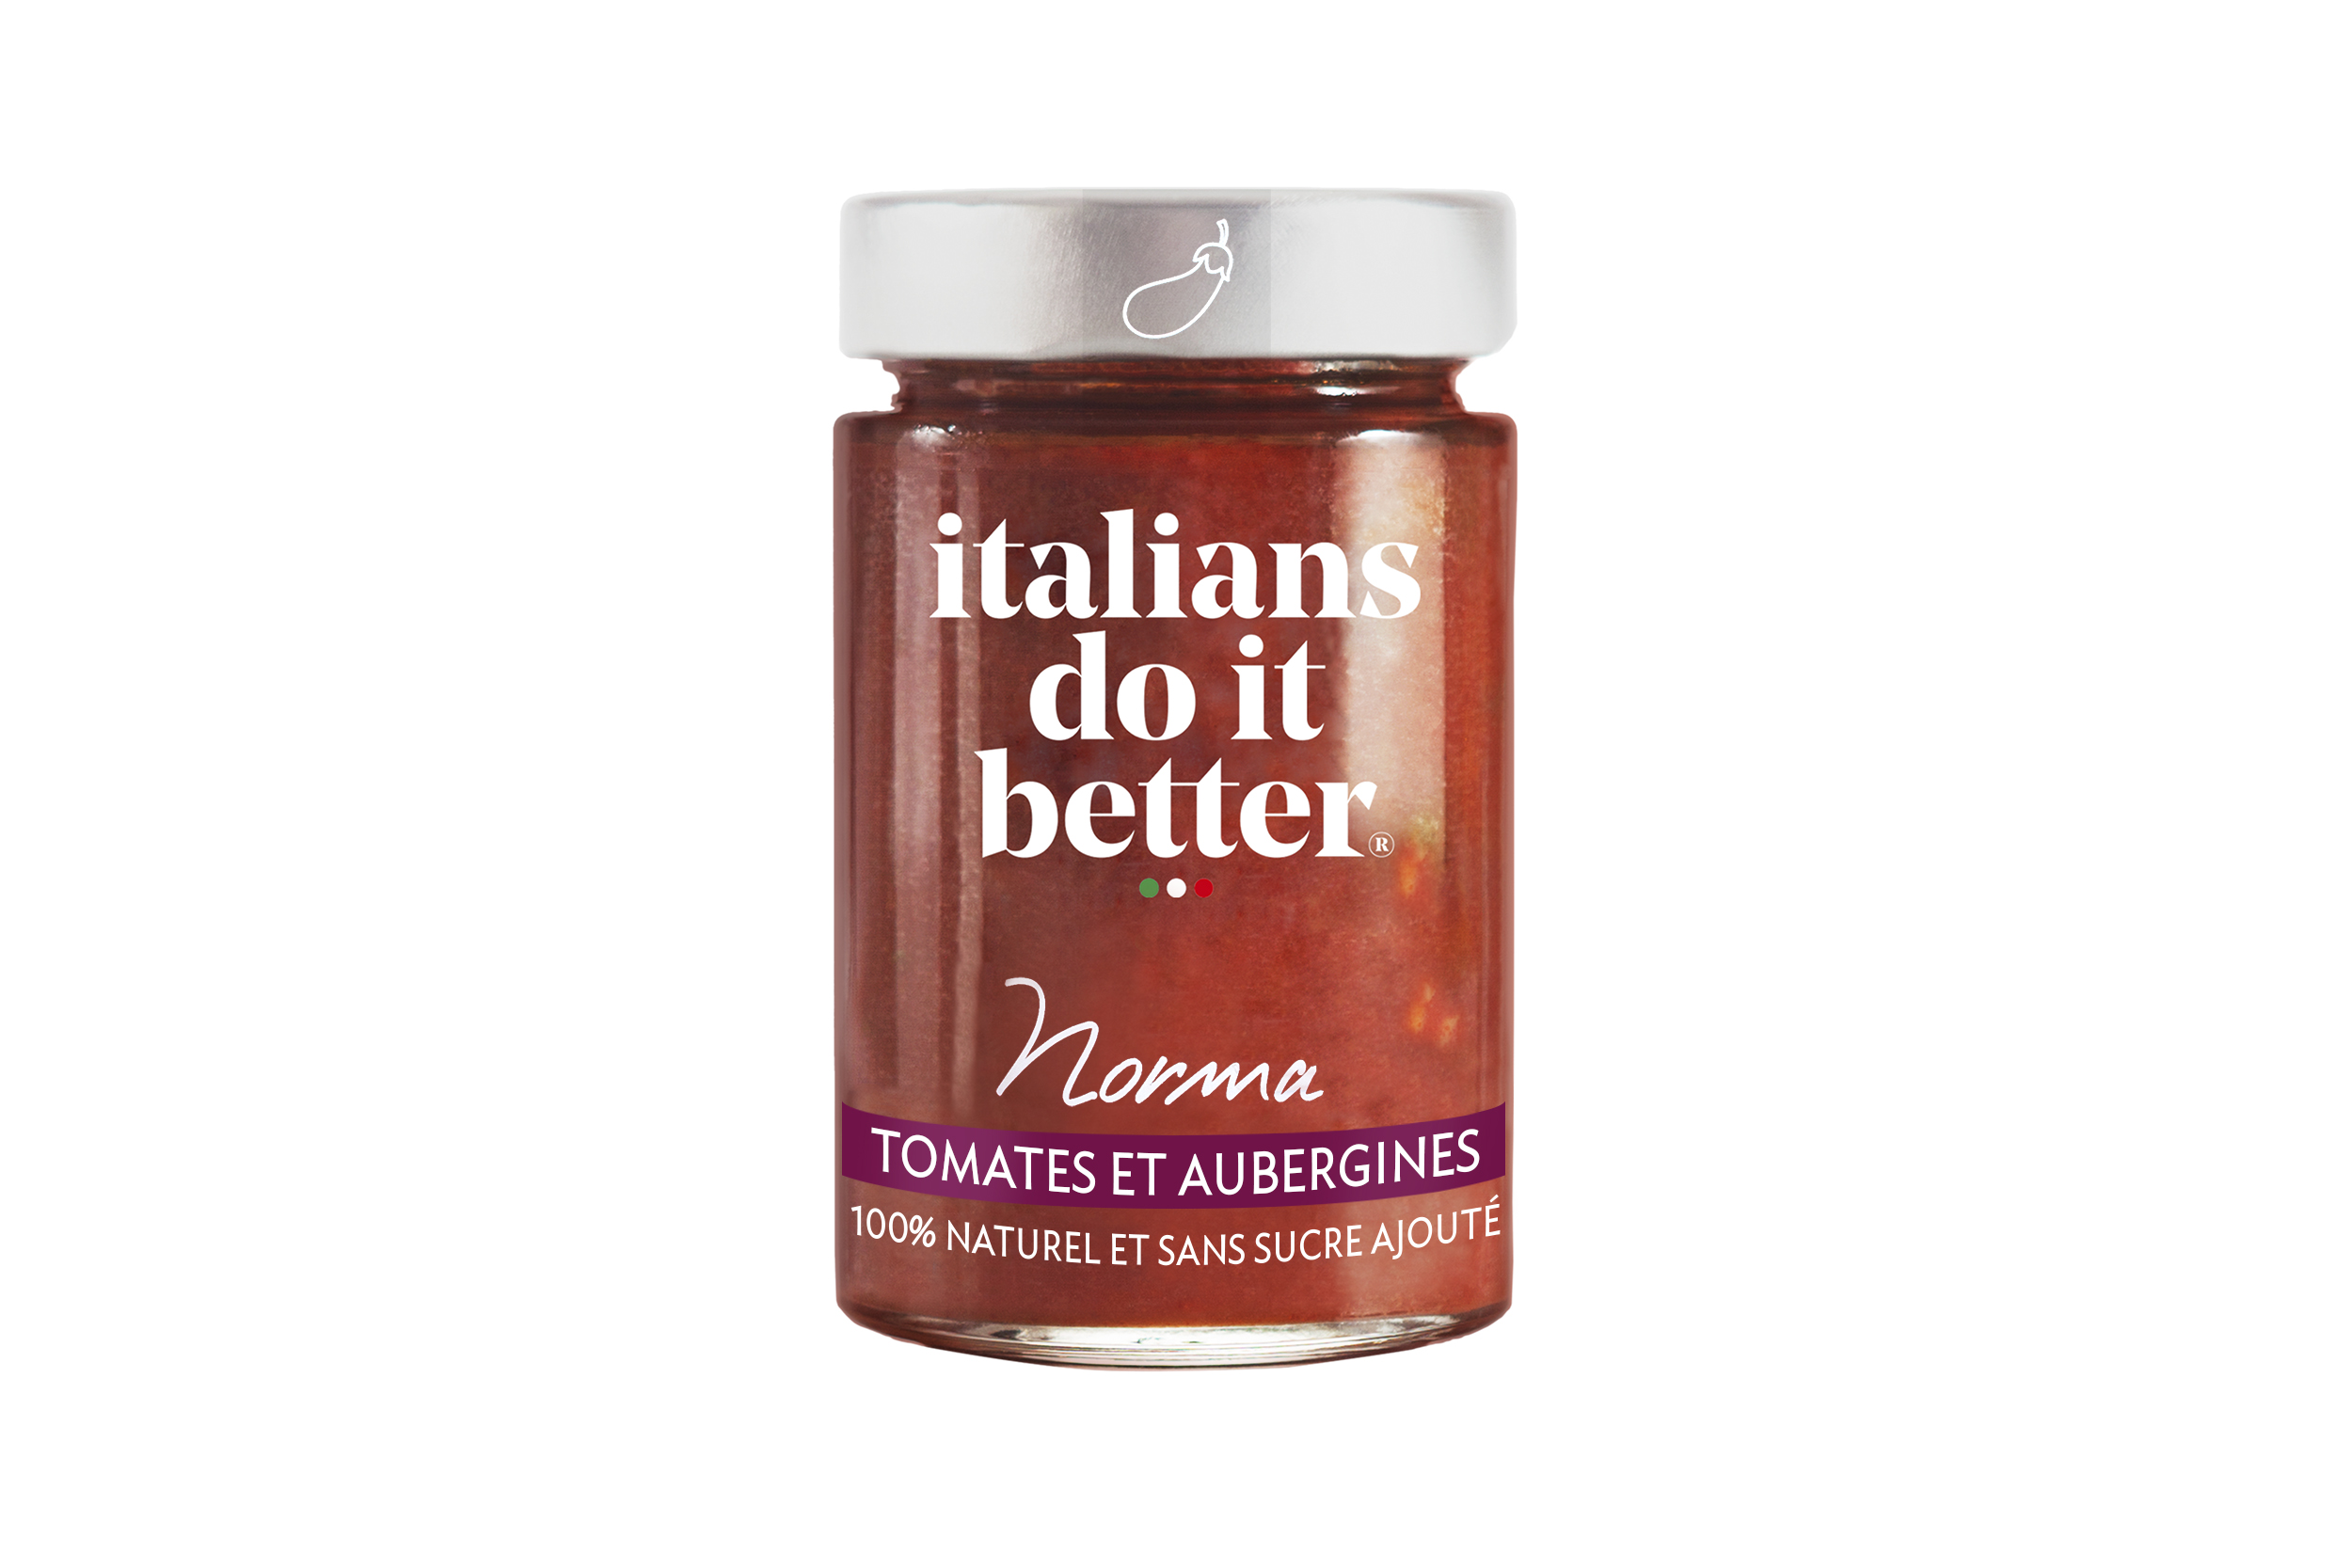 Norma   Tomatoes (82%), Eggplants (12%), Onions, Olive Oil, Basil, Salt, Garlic, Chili, Pepper.  A Sicilian tomato sauce with aubergines, inspired by Bellini's eponymous opera, that warms the vocal chords and charms the taste buds!   How to do it better :  Cook with  s  paghetti or fusilli.  Sprinkle with Parmigiano Reggiano.